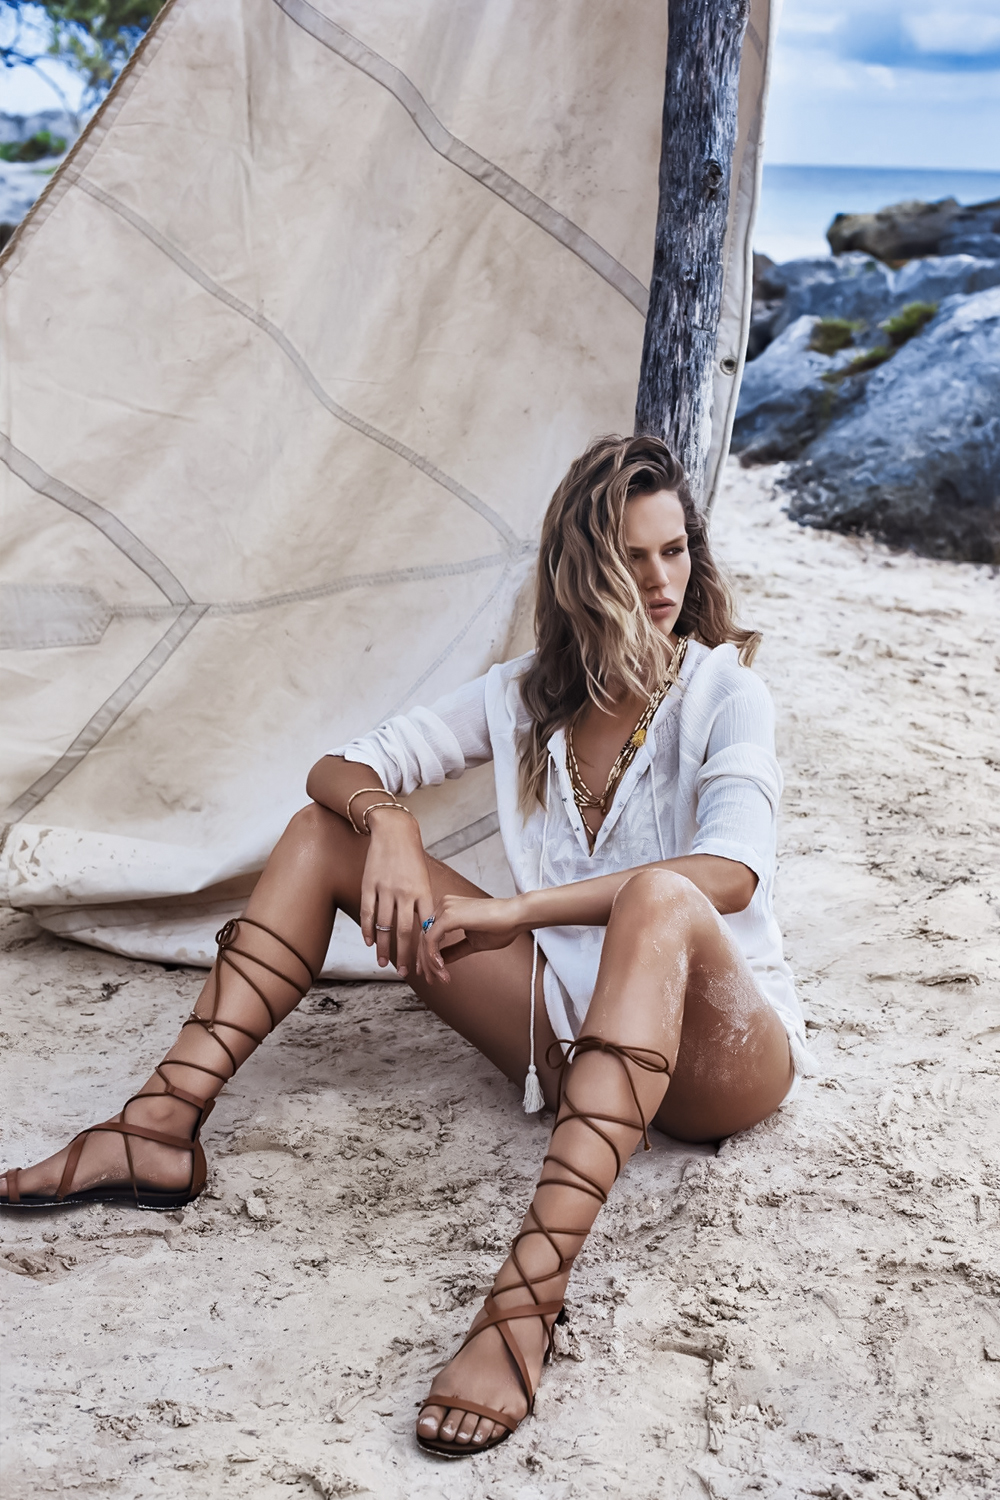 woman in gladiator sandals in posing on a sandy beach